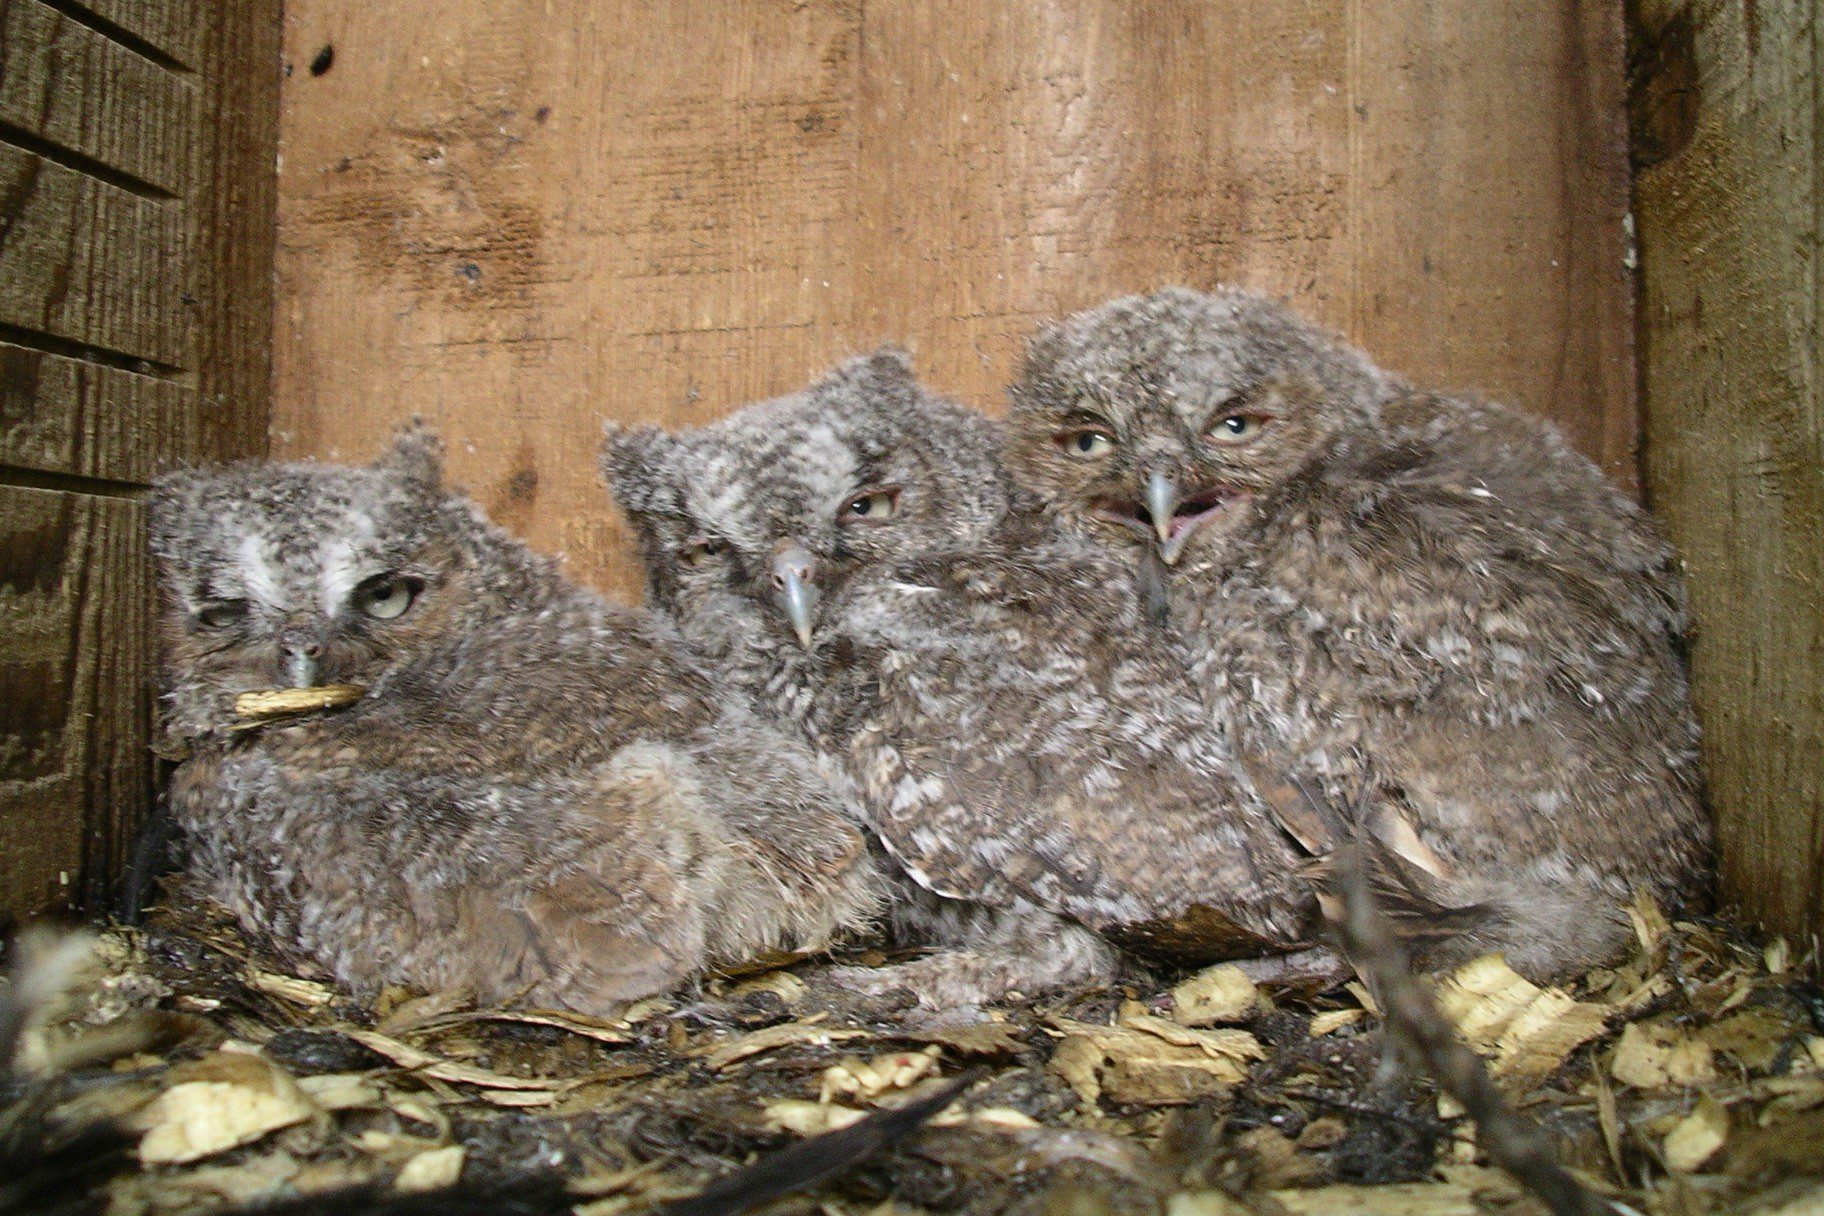 Sometimes Eastern Screech-owls nest in bird boxes.  These three chicks were raised in a box at the Delaware Nature Society's Coverdale Farm Preserve.  Photo by Joe Sebastiani